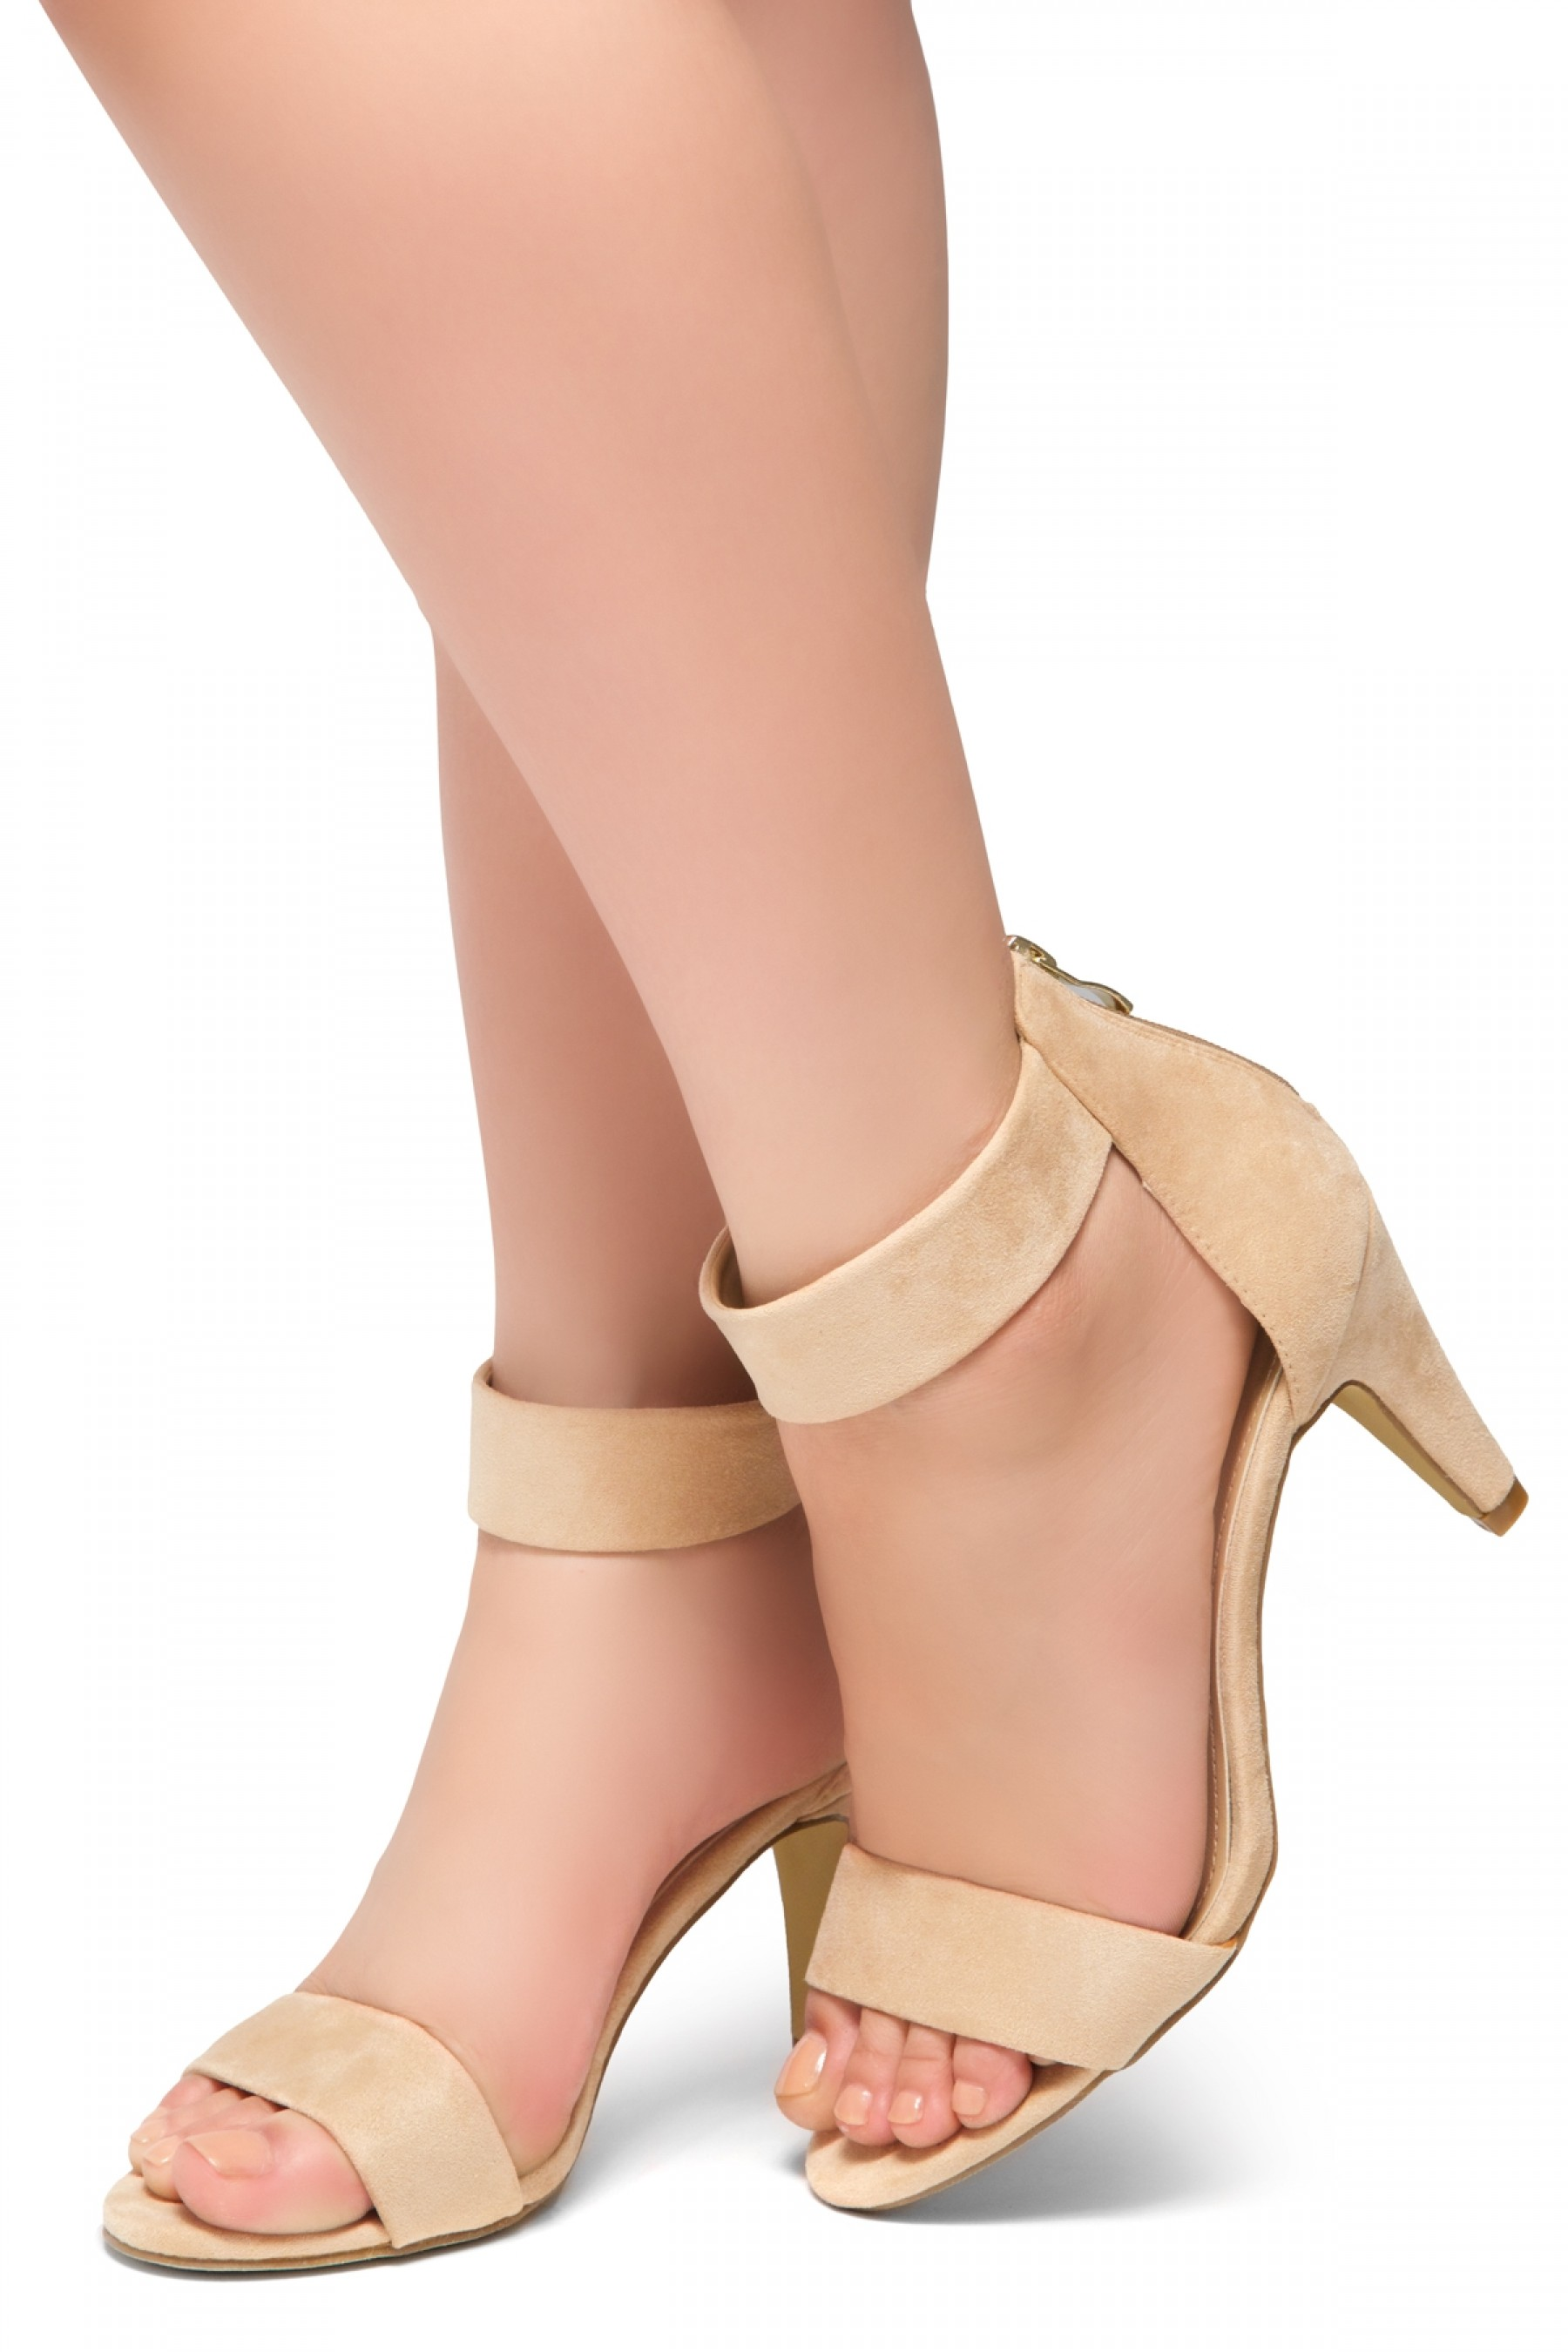 HerStyle RRose-Stiletto heel, back zipper closure (Beige)